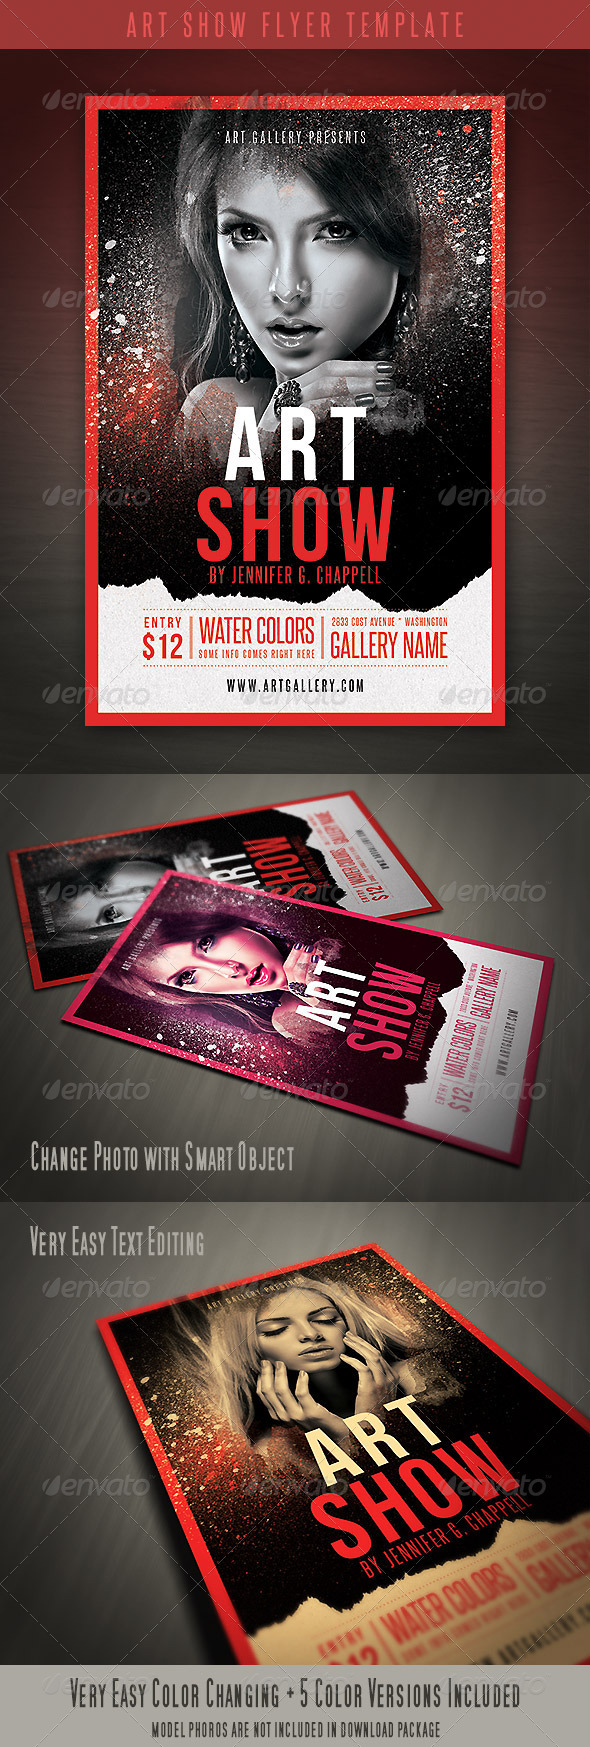 Art Show Flyer Template - Events Flyers